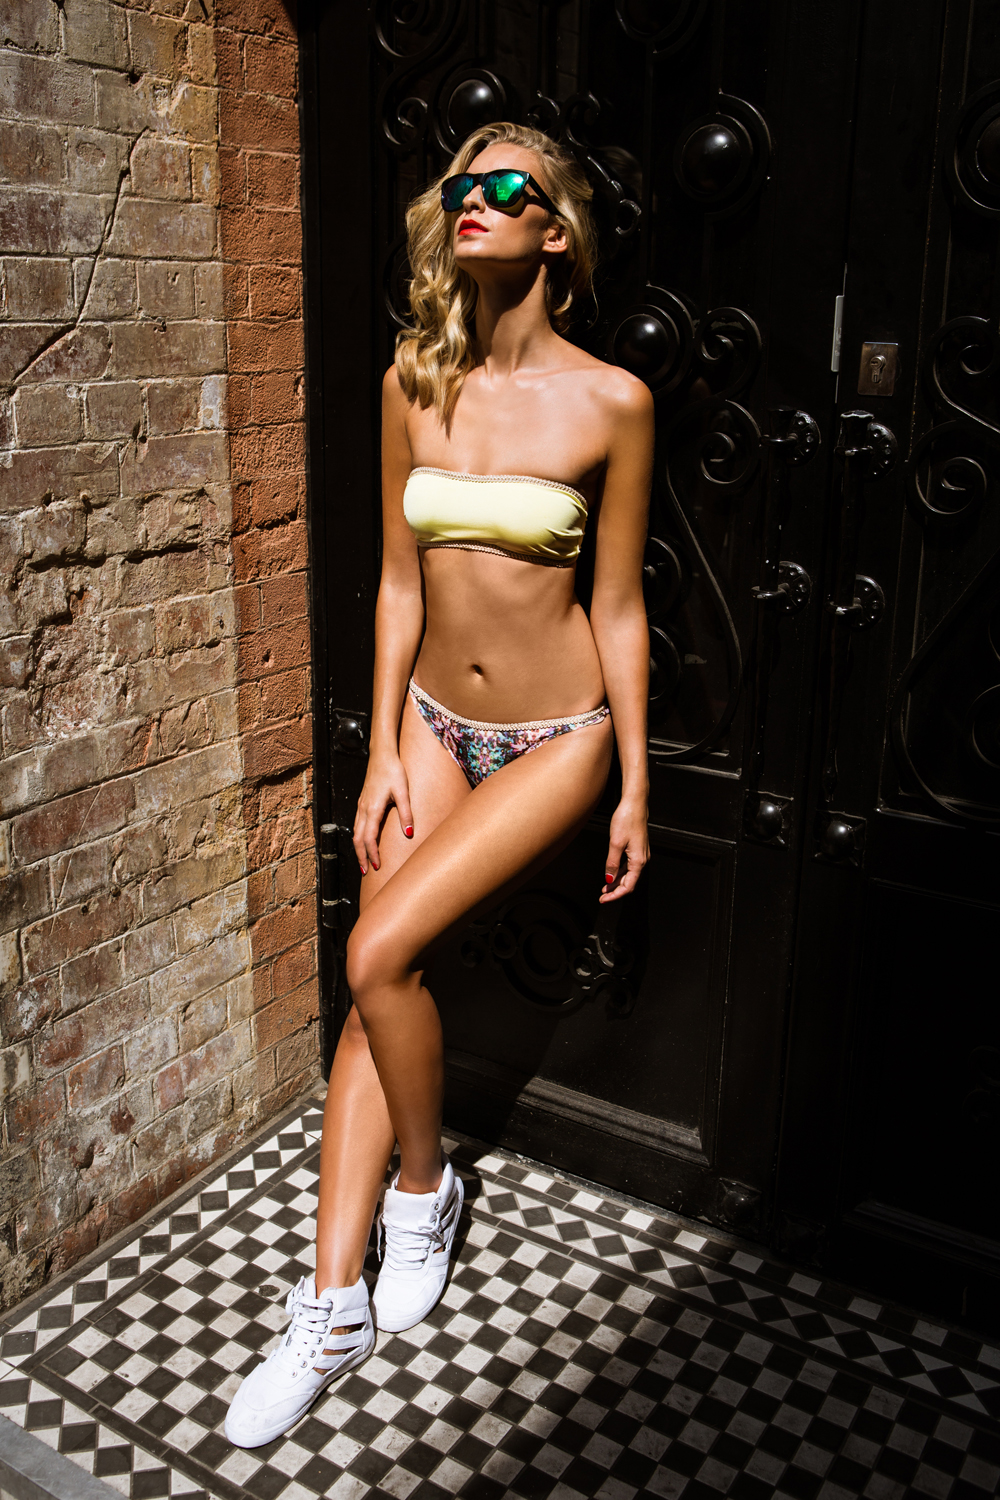 Jet Set Go: The Hottest Bikini Collections About To Hit UK Shores advise